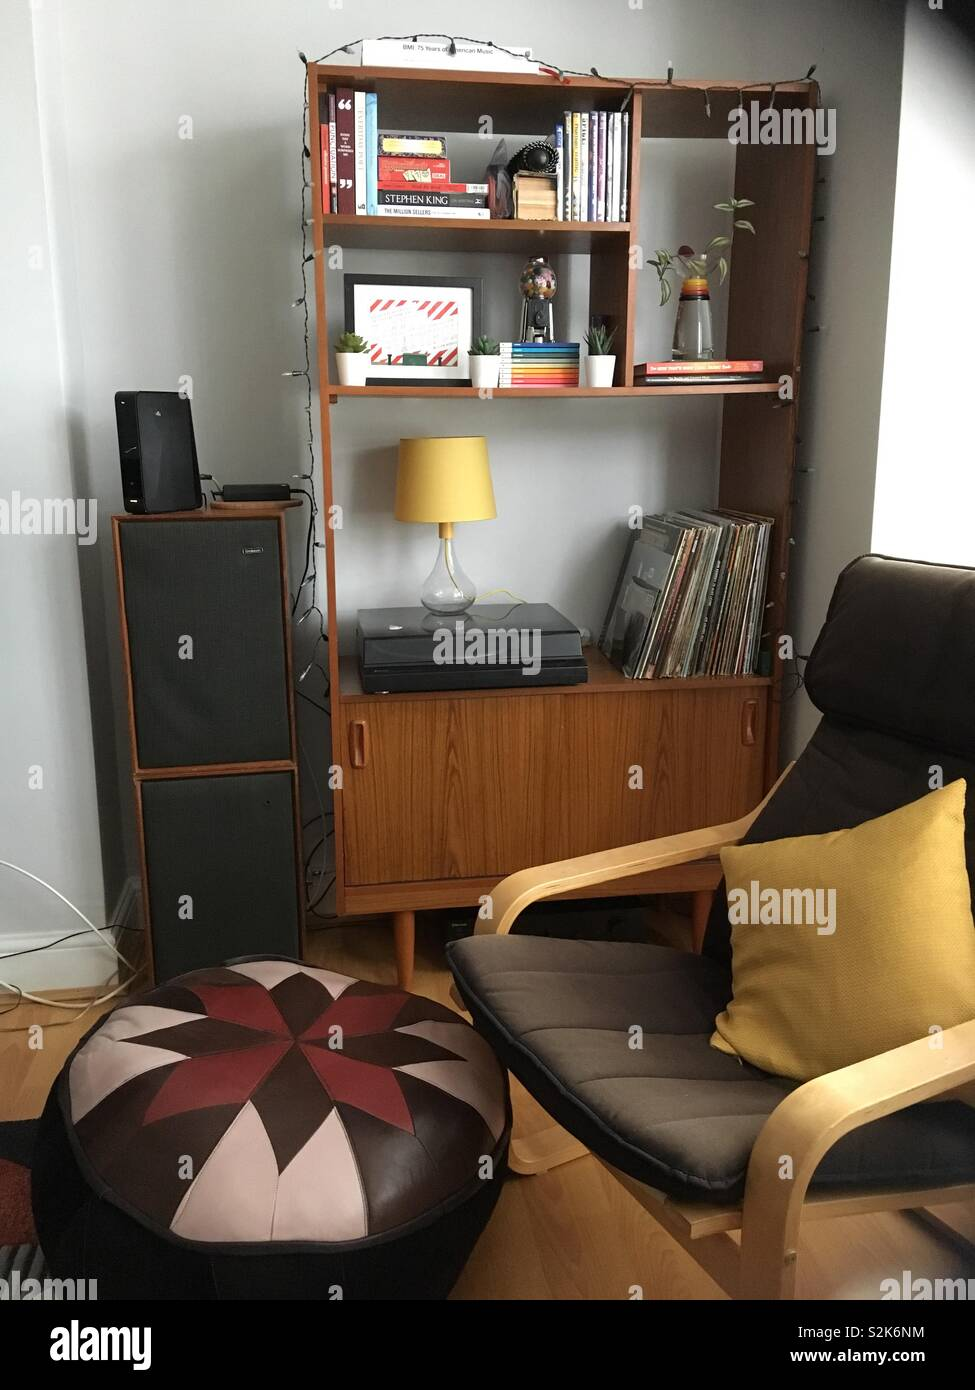 Corner Of A Stylish Living Room With A Record Player Books And Other Decorative Items On A Retro Wooden Unit Stock Photo Alamy